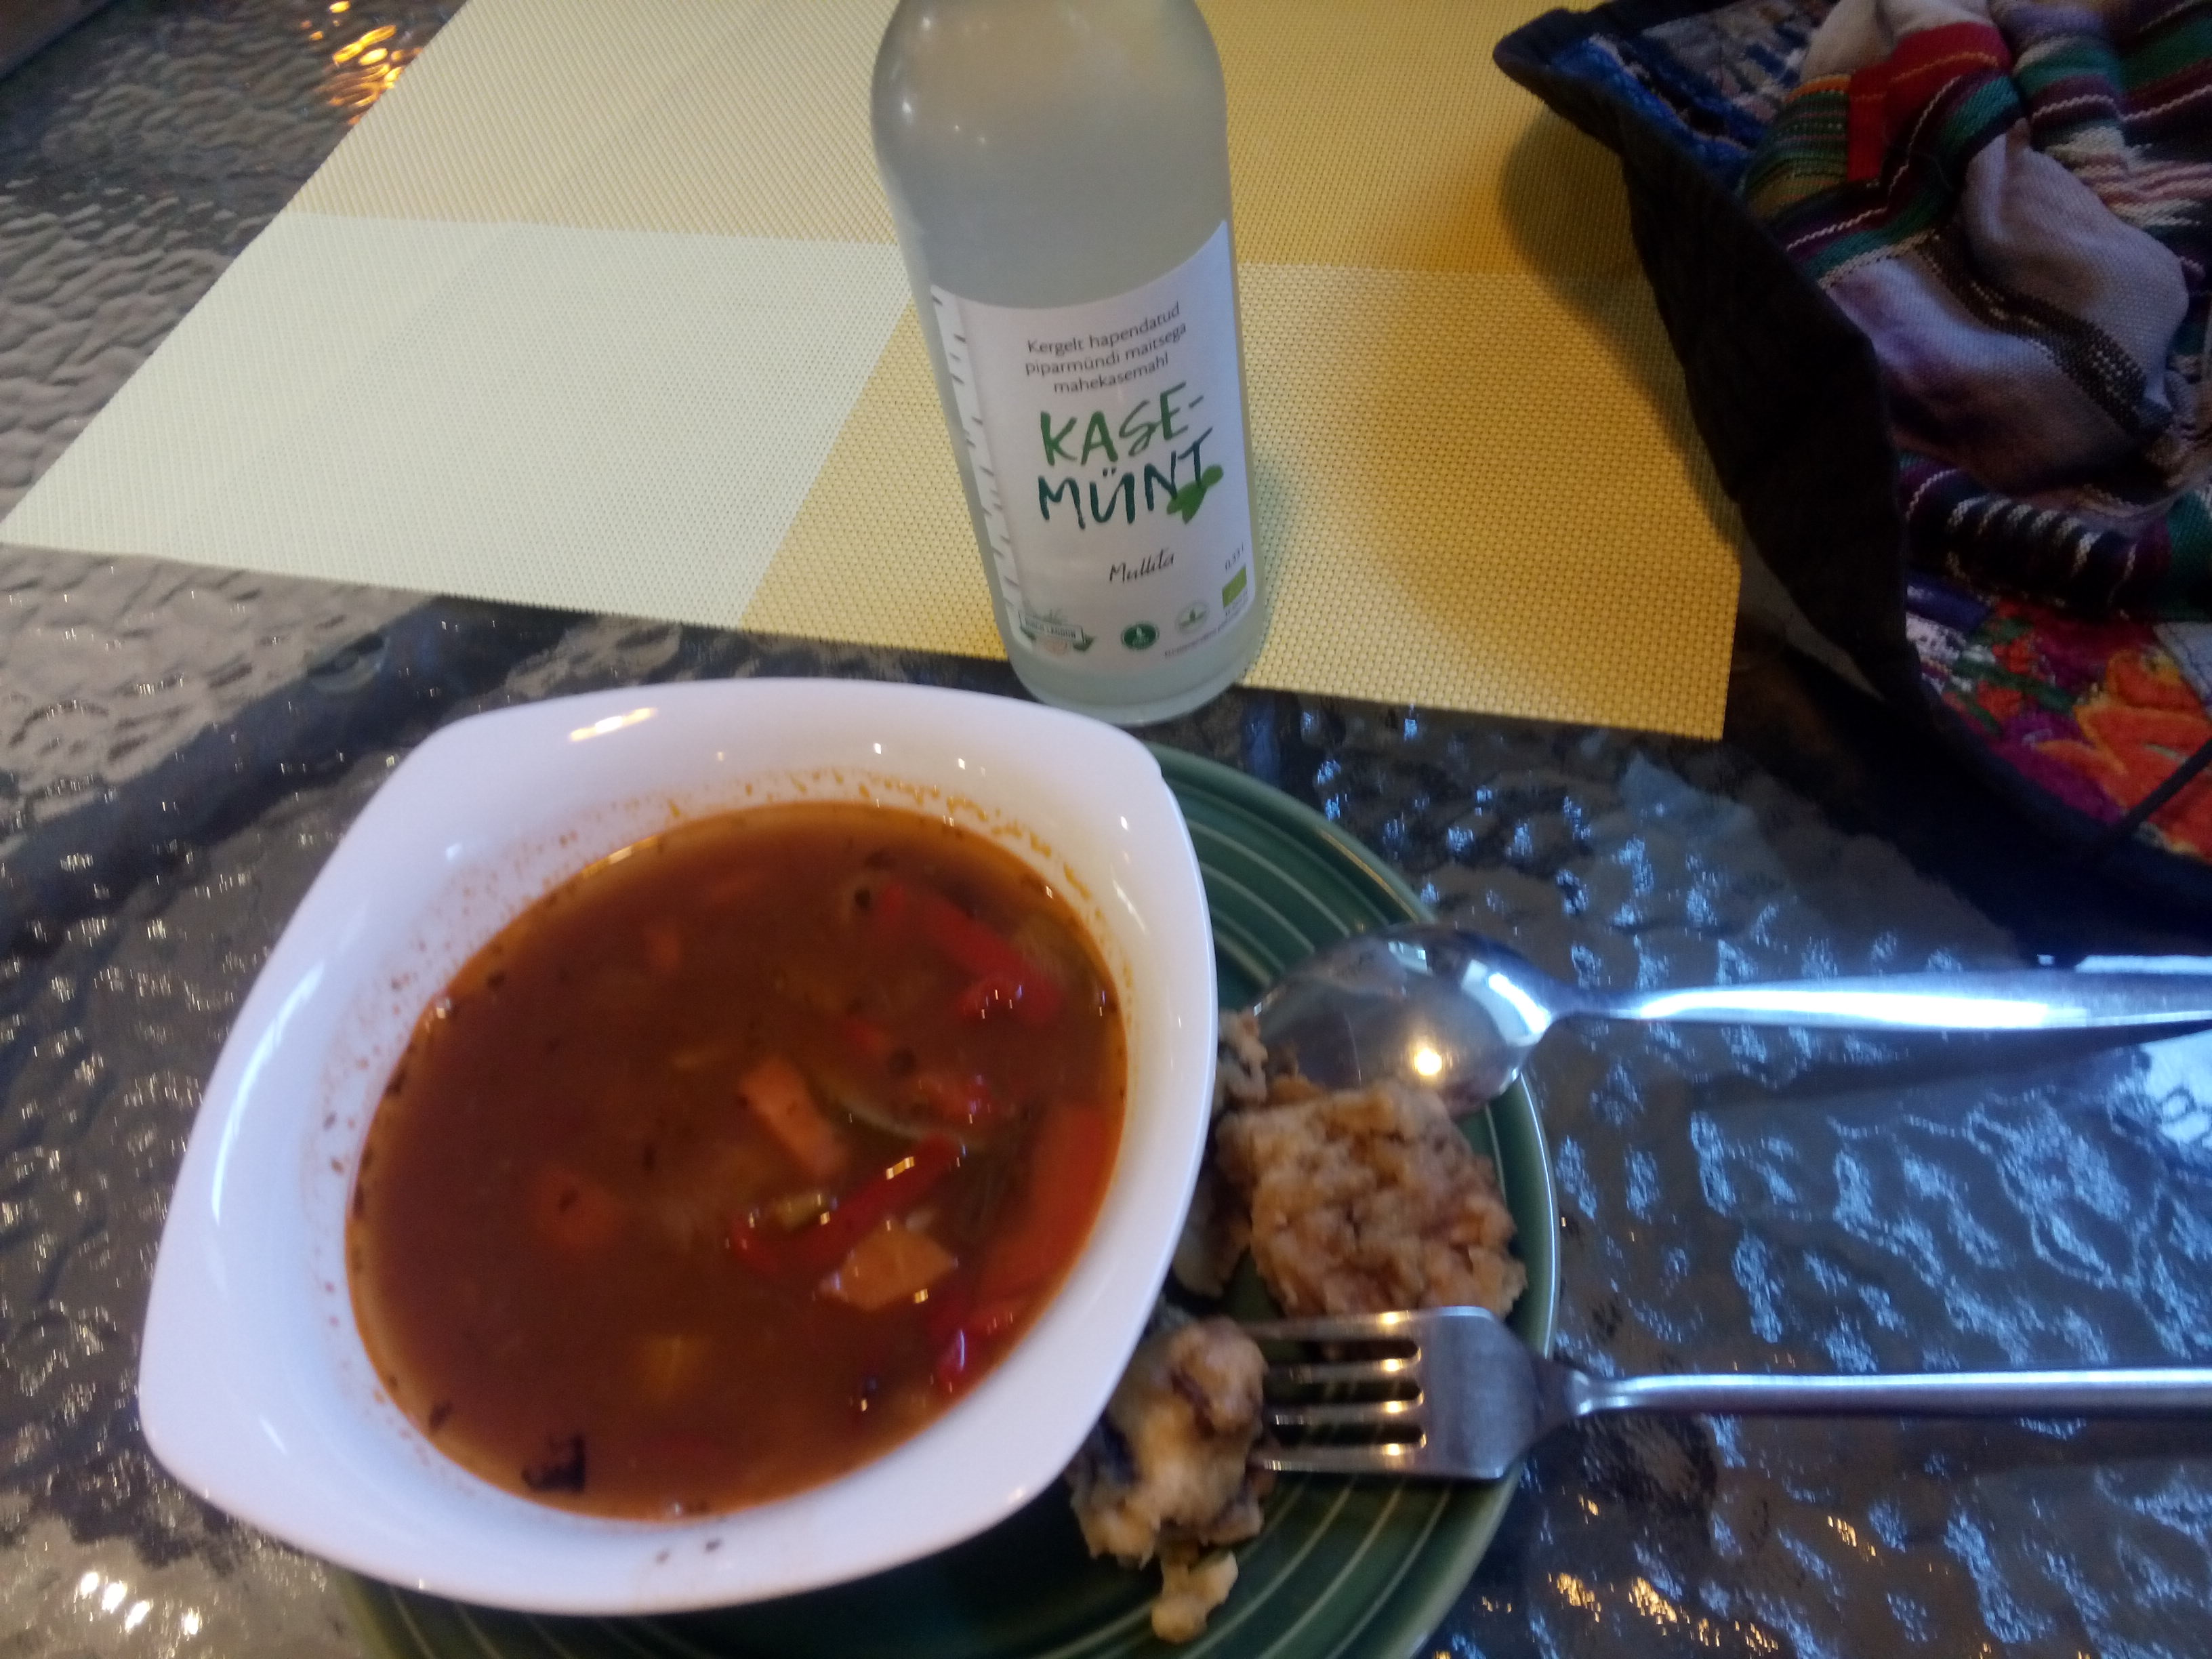 A glass table with a bowl of red soup on a plate and something fried on the side